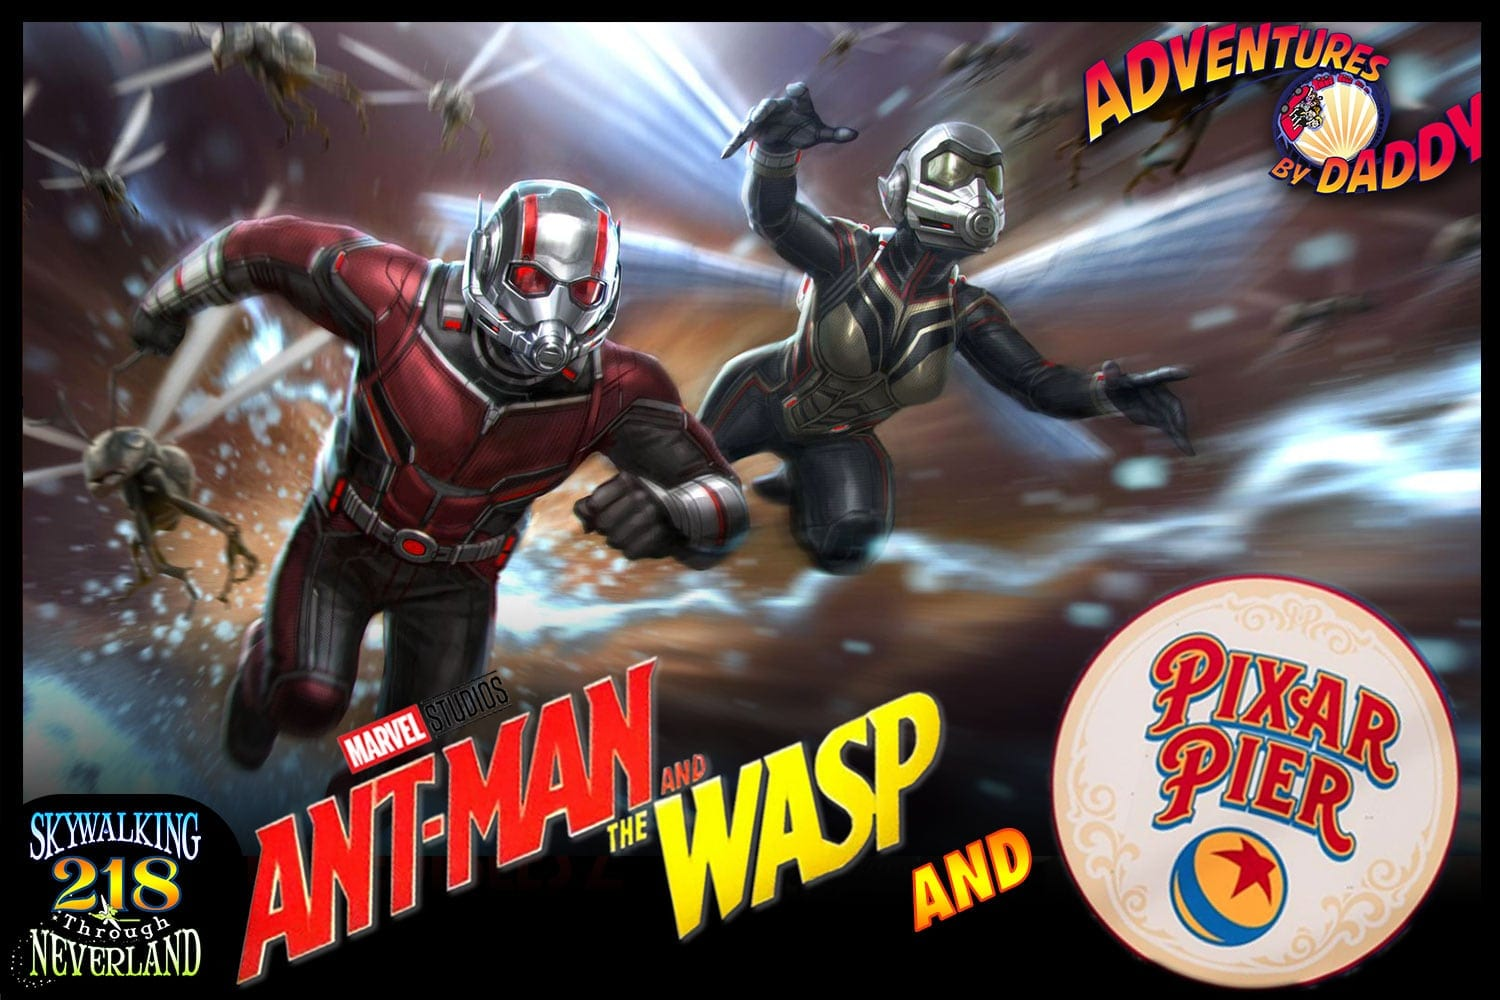 Skywalking Through Neverland #218: Ant-Man, Wasp and Pixar Pier!